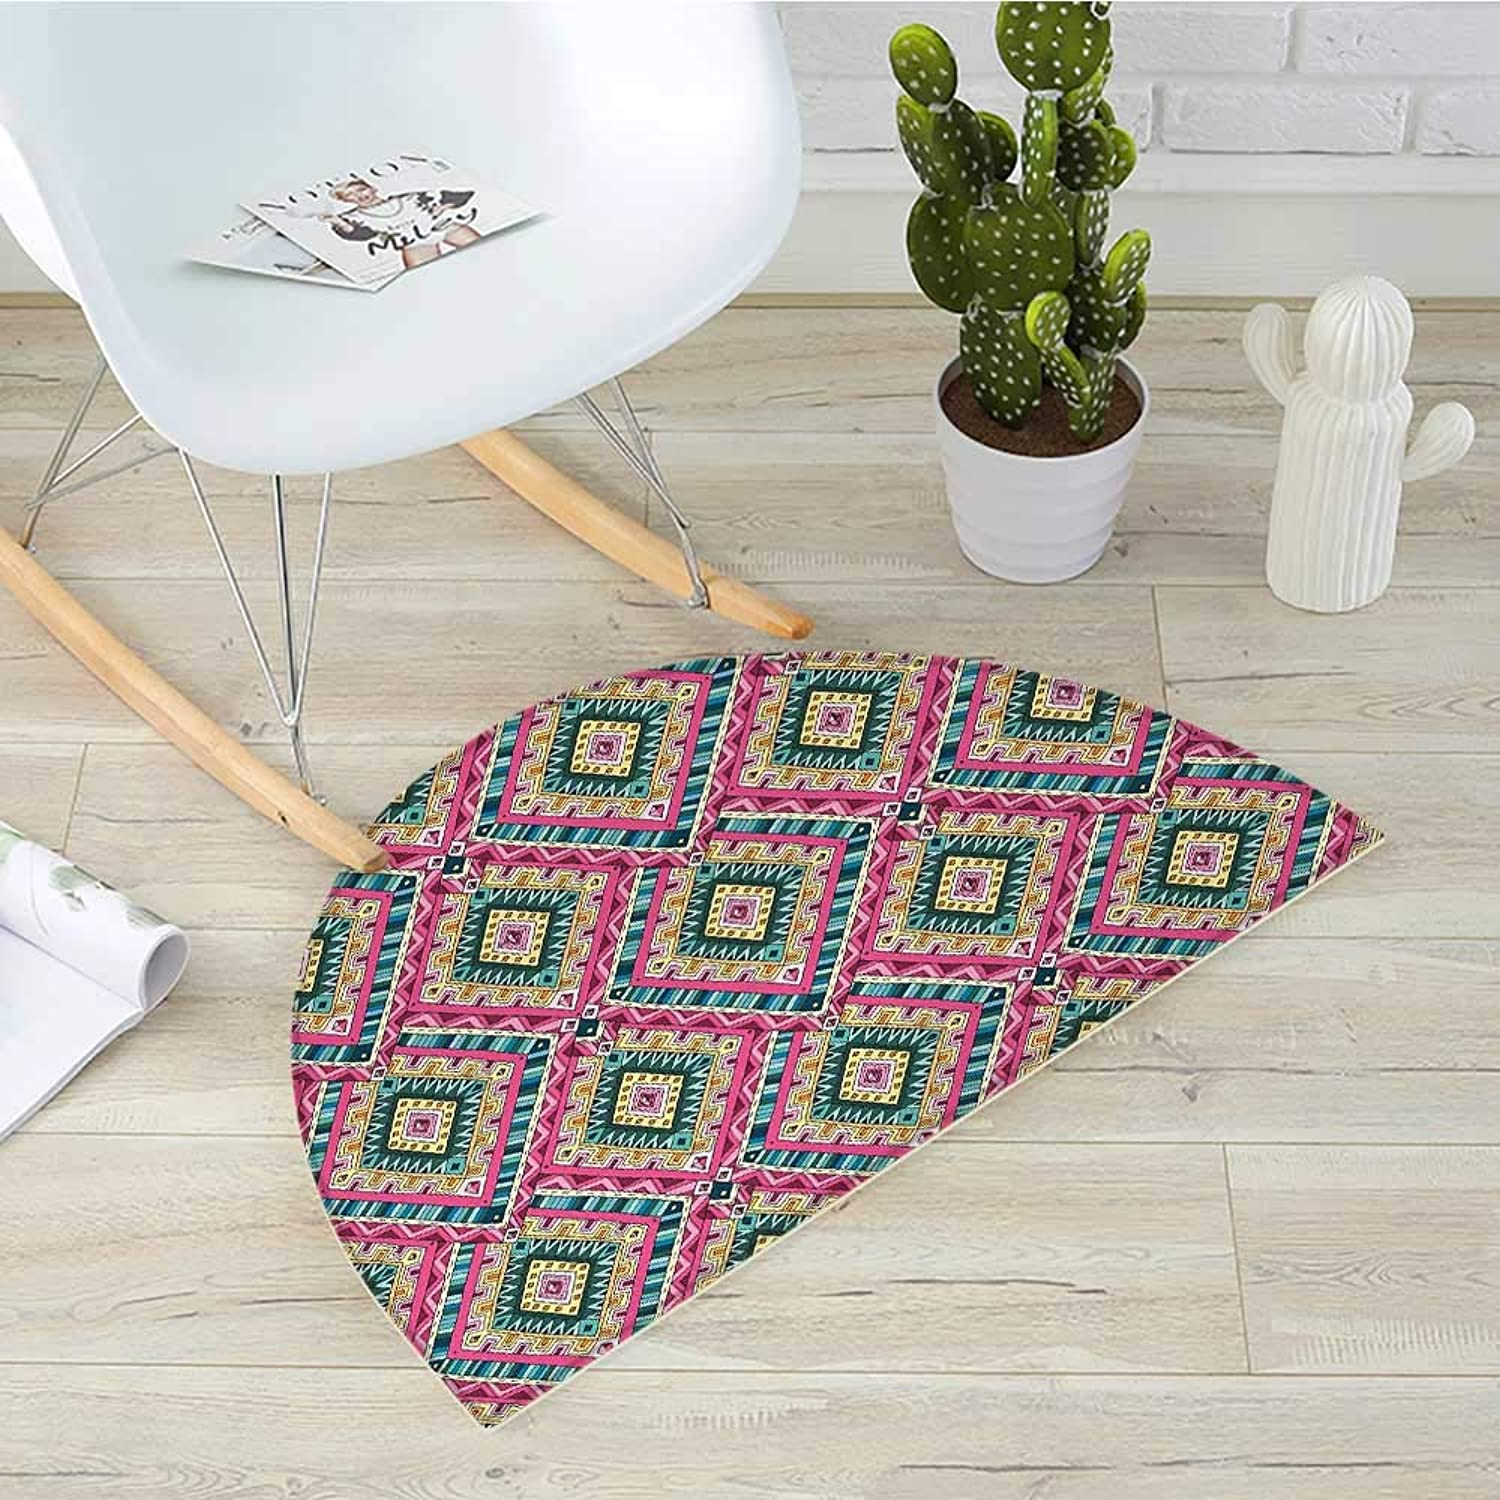 Asian Half Round Door mats Traditional Ethnic Geometric Doodle Like Pattern Ancient Tribal Motifs Vintage Style Bathroom Mat H 35.4  xD 53.1  Multicolor